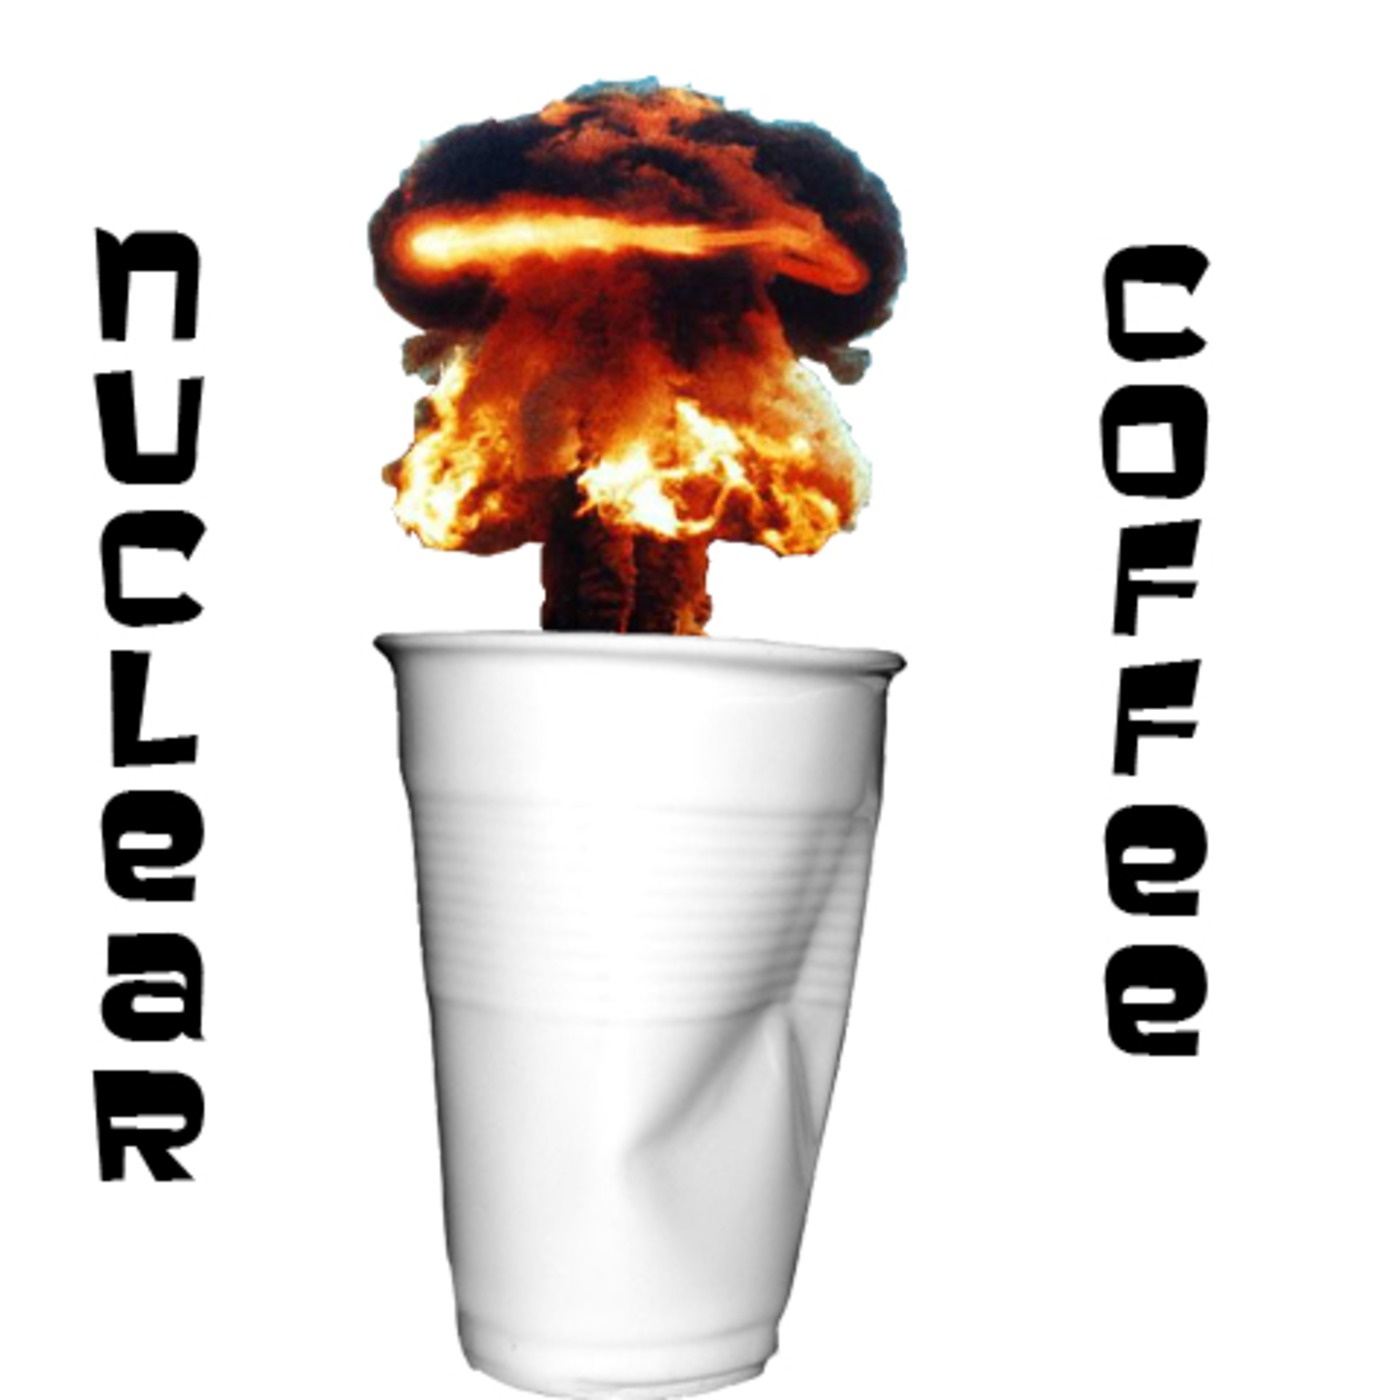 Nuclearcoffee's Podcast